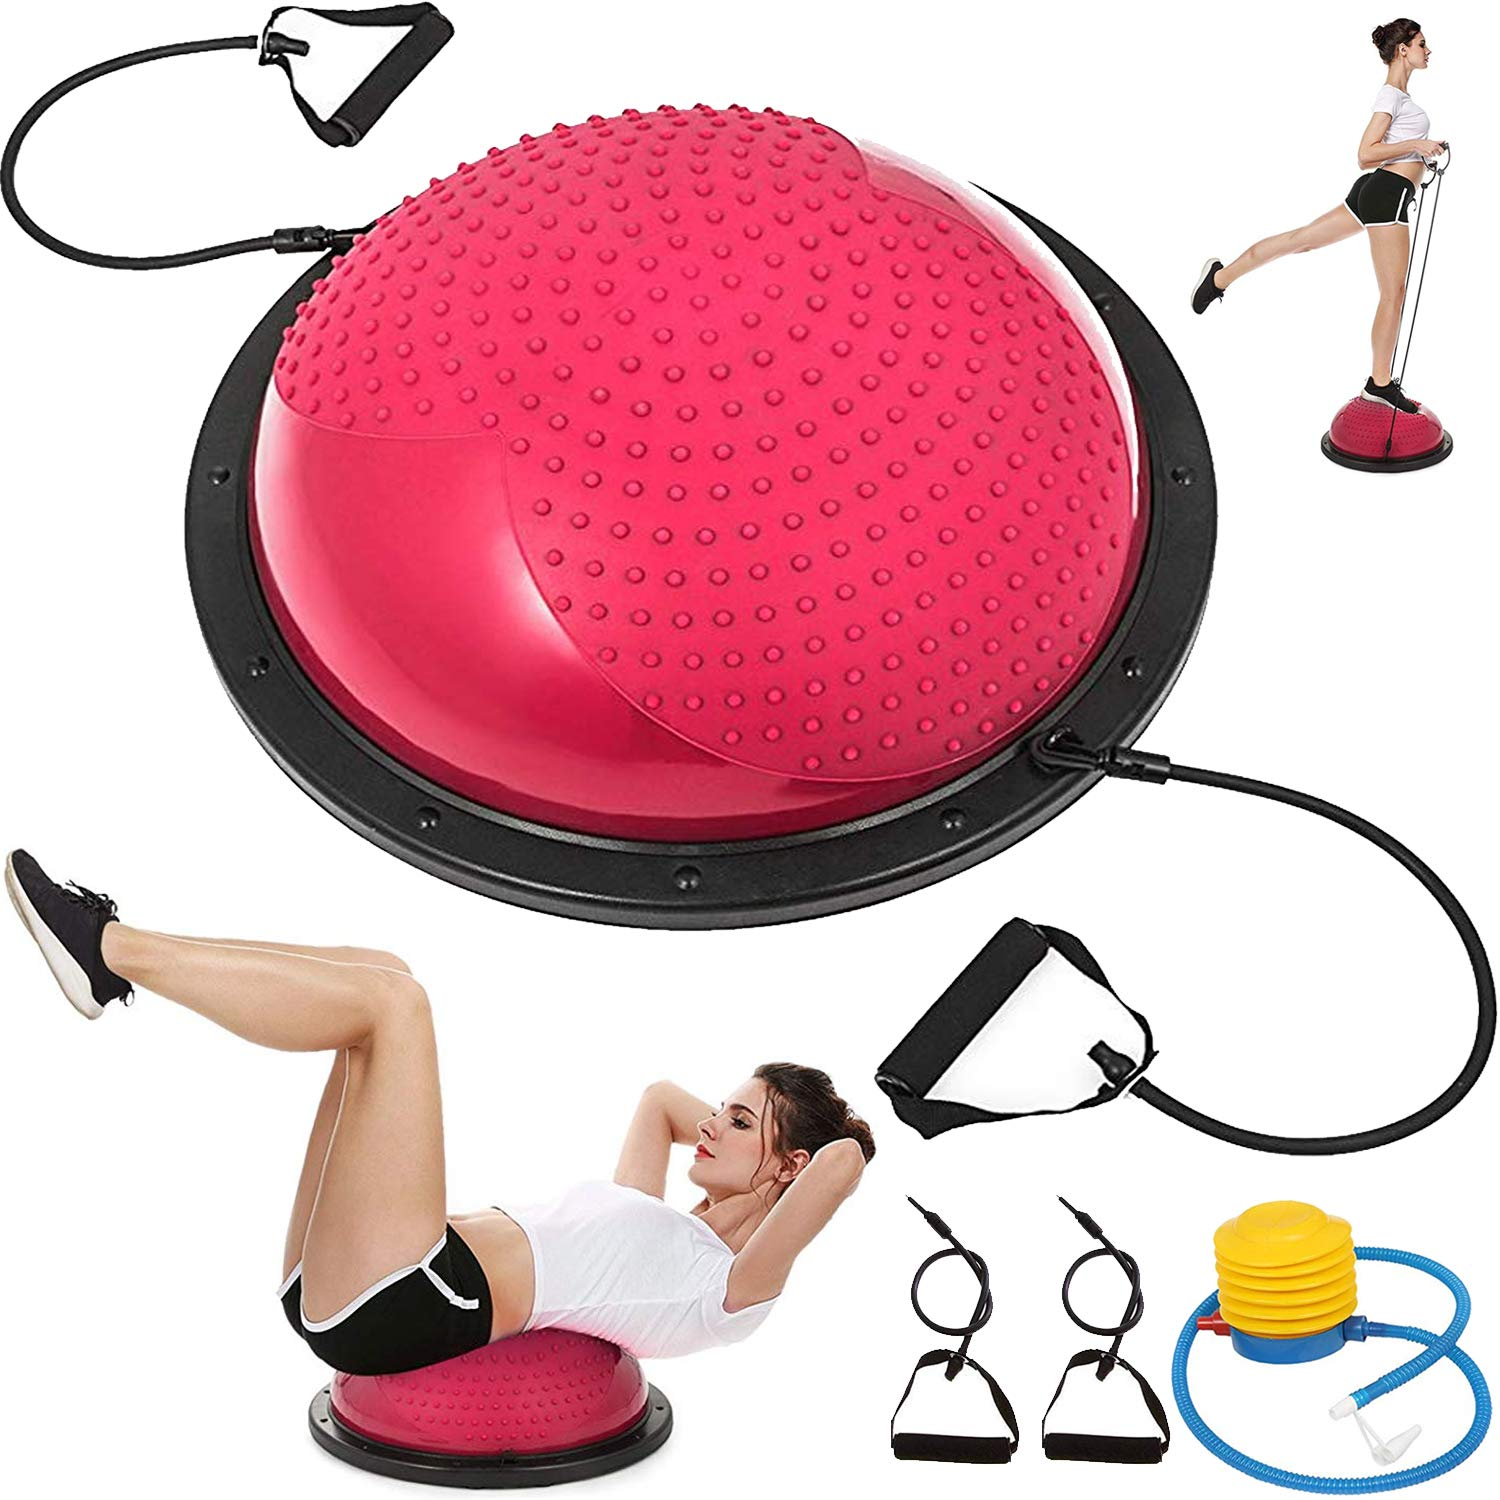 VEVOR Balance Trainer Ball 23 Inch Balance Trainer Blue Yoga Balance Ball Fitness Strength Exercise Workout with Resistance Bands and Pump (Pink Massage)